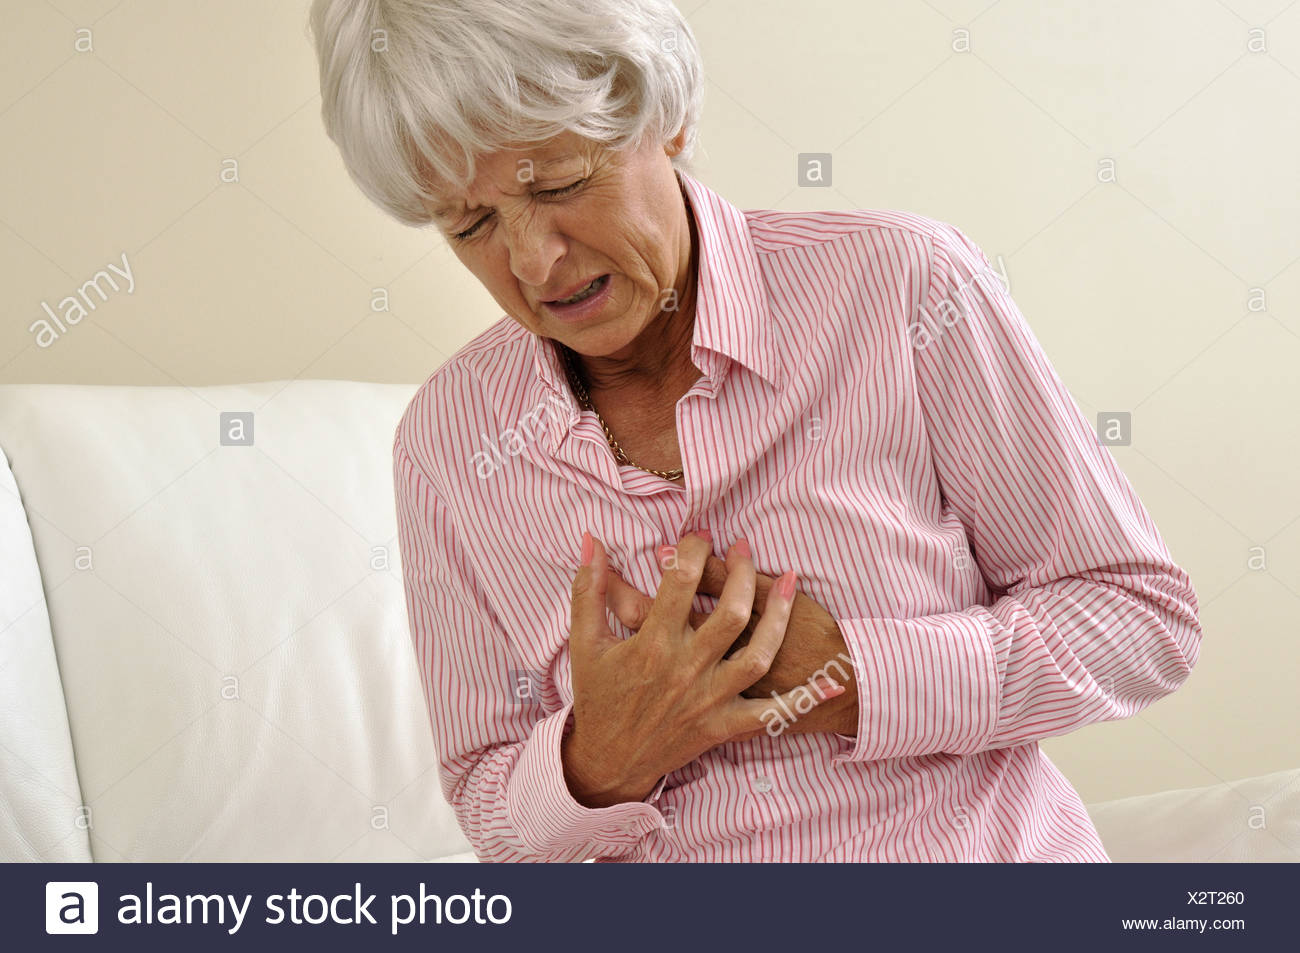 Indoors Indoor Woman Senior Mature Angina Heart Pain Old Sick Myocardial infarction Heart attack - Stock Image